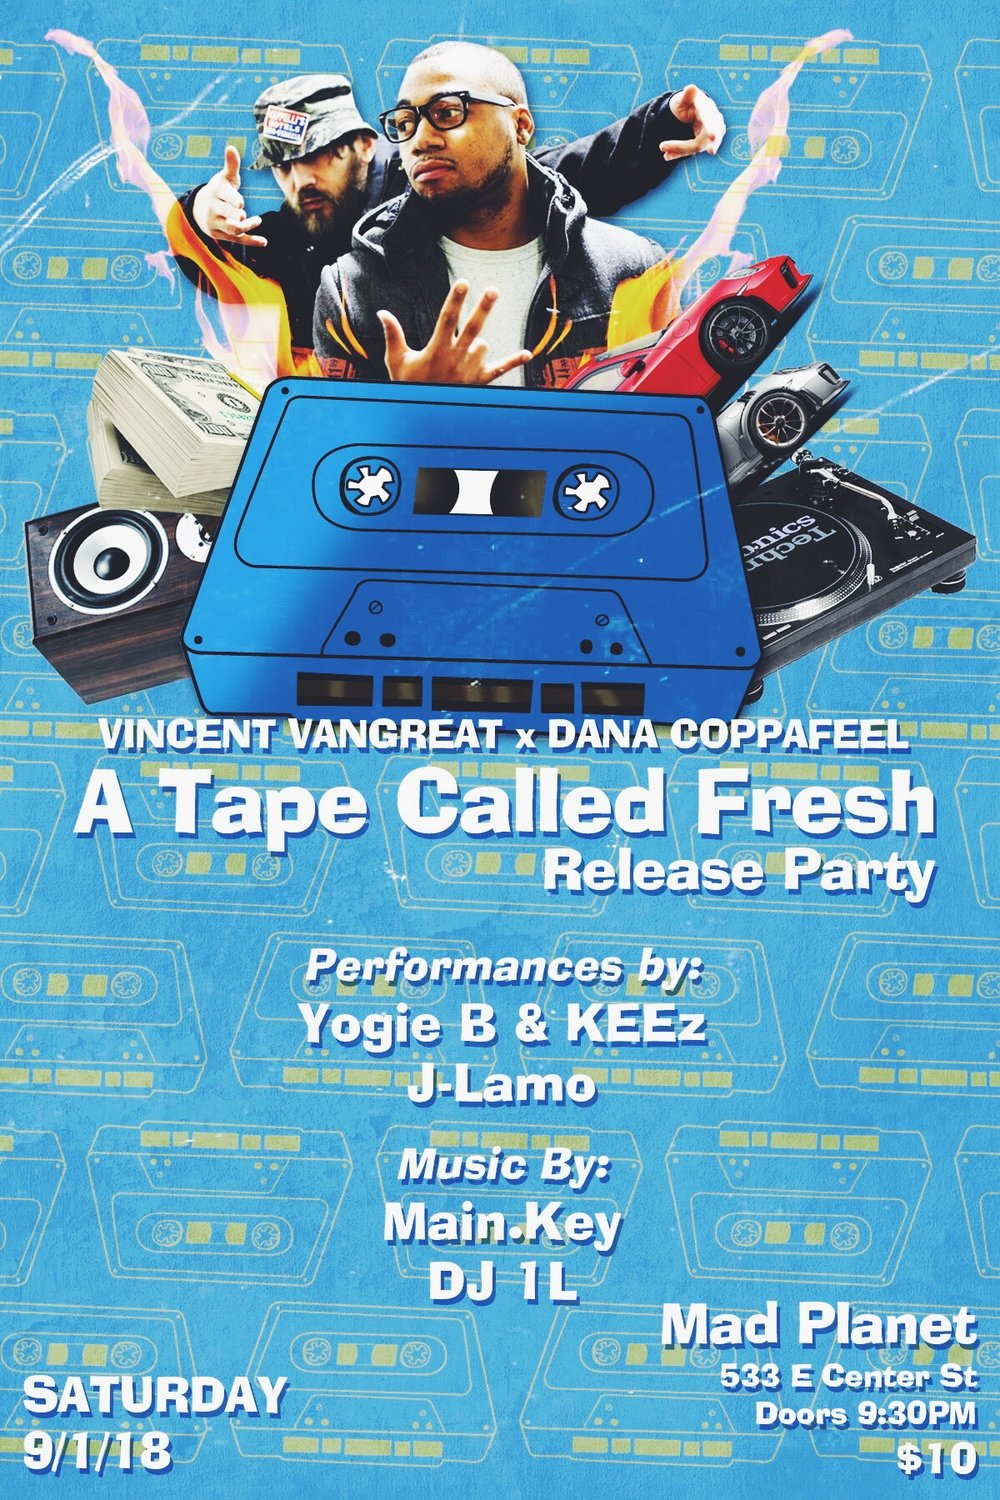 "Saturday September 1st 2018!    In celebration of their new album Vincent Van Great and Dana Coppa are performing new tracks from their forthcoming LP ""A Tape Called Fresh""    Performances by:    Vincent VanGreat   &   Dana Coppafeel   Yogie B & Keez      J-Lamo    Music By:   Main.Key   DJ1L       https://www.facebook.com/events/277976216134774/         Doors @ 9:30 PM   $10   21+"